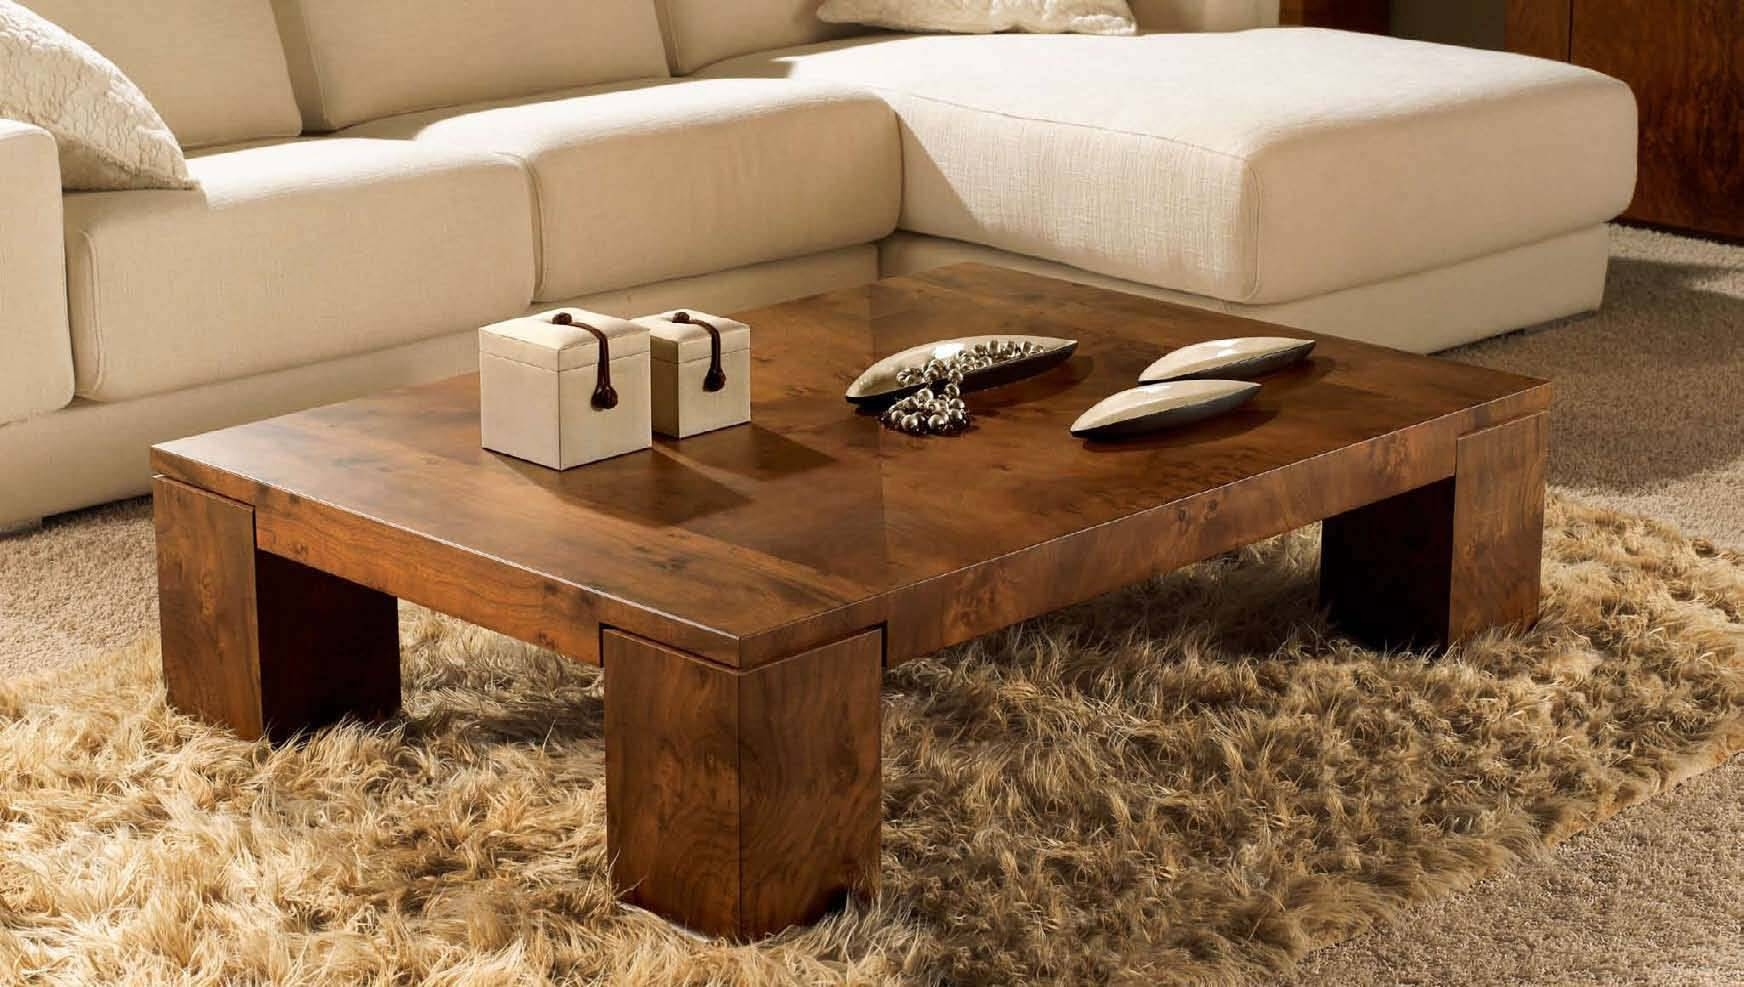 Low Square Coffee Table Wooden | Coffee Tables Decoration With Regard To Large Low Wood Coffee Tables (View 12 of 30)